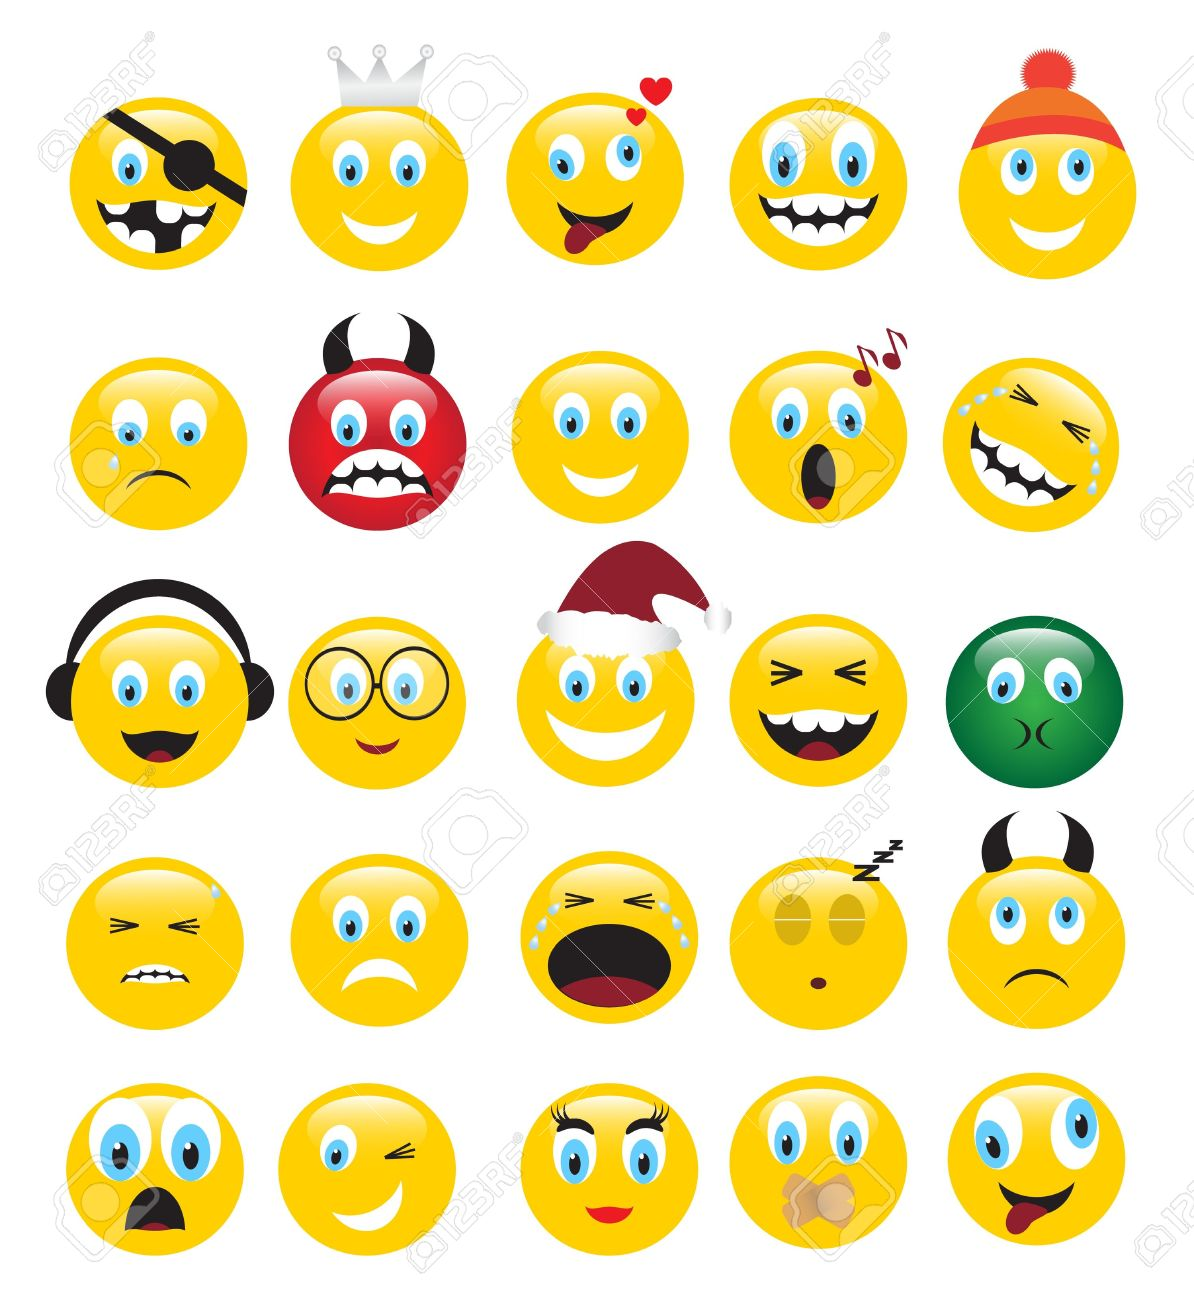 round yellow icons depicting various human emotions. Stock Vector - 14732579